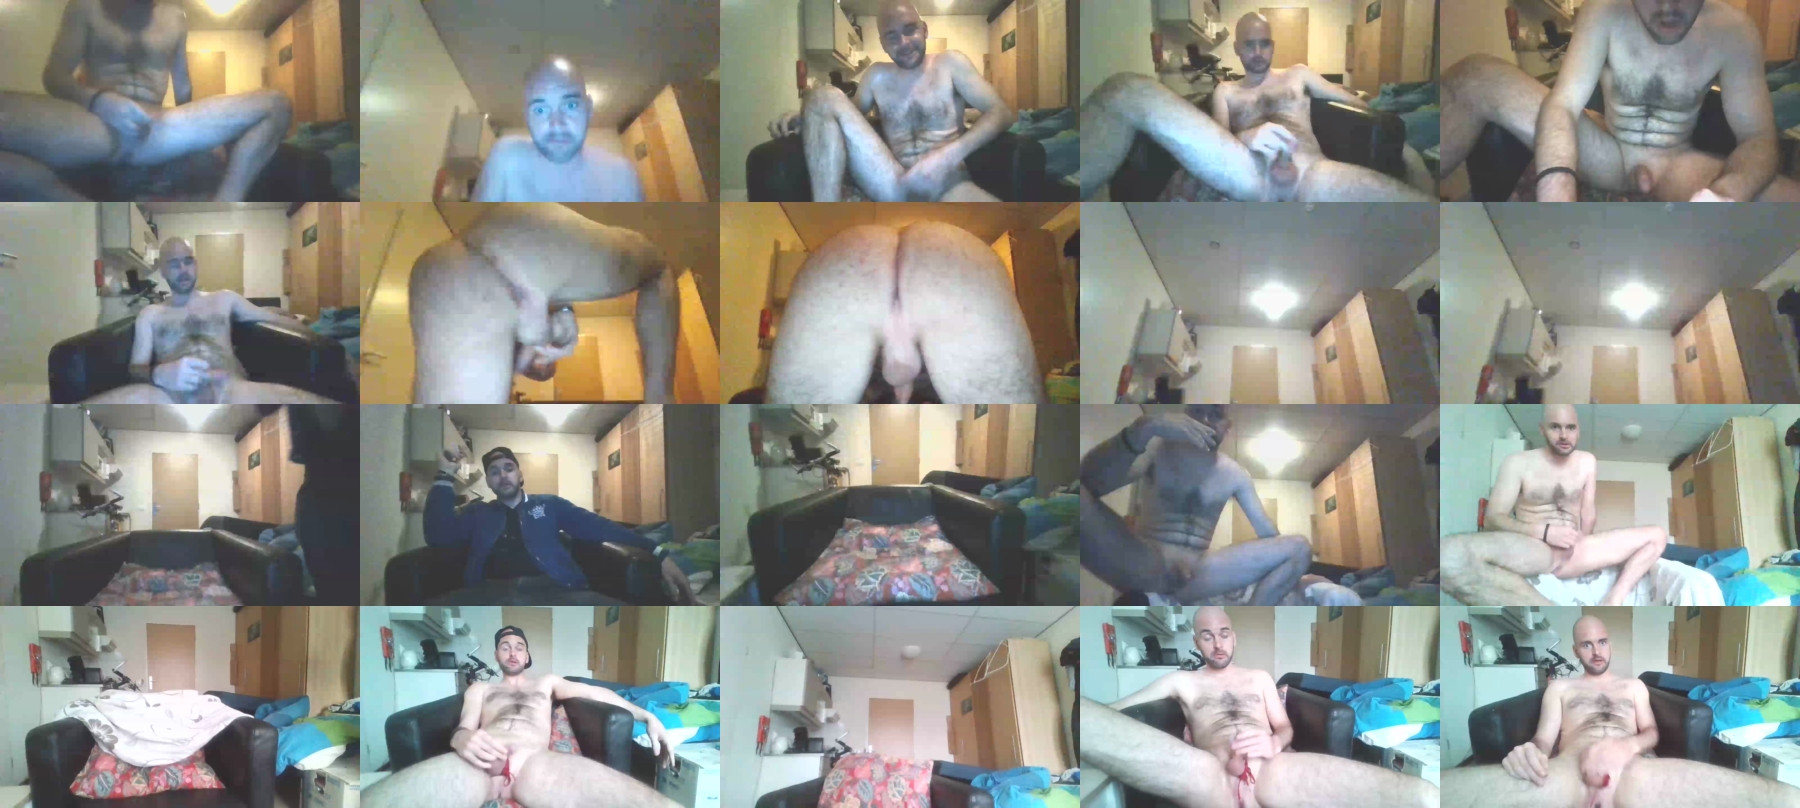 Sean20755 Cam4 04-05-2021 Recorded Video Show